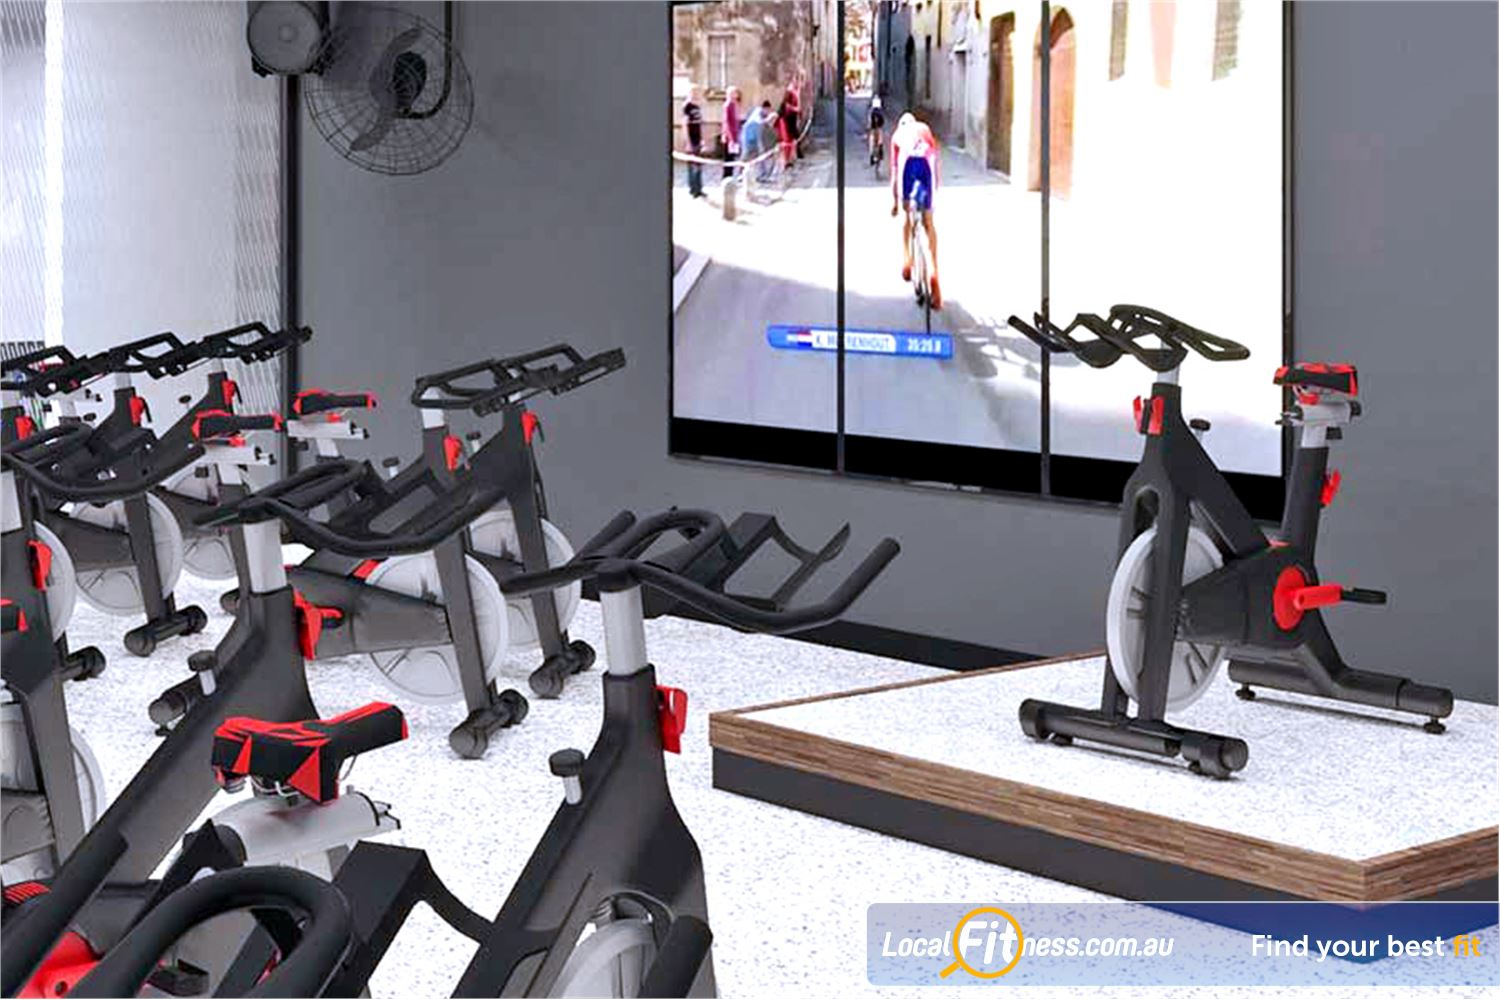 Goodlife Health Clubs Near Seaford Meadows The virtual group fitness screen is great for our Noarlunga cycle classes.